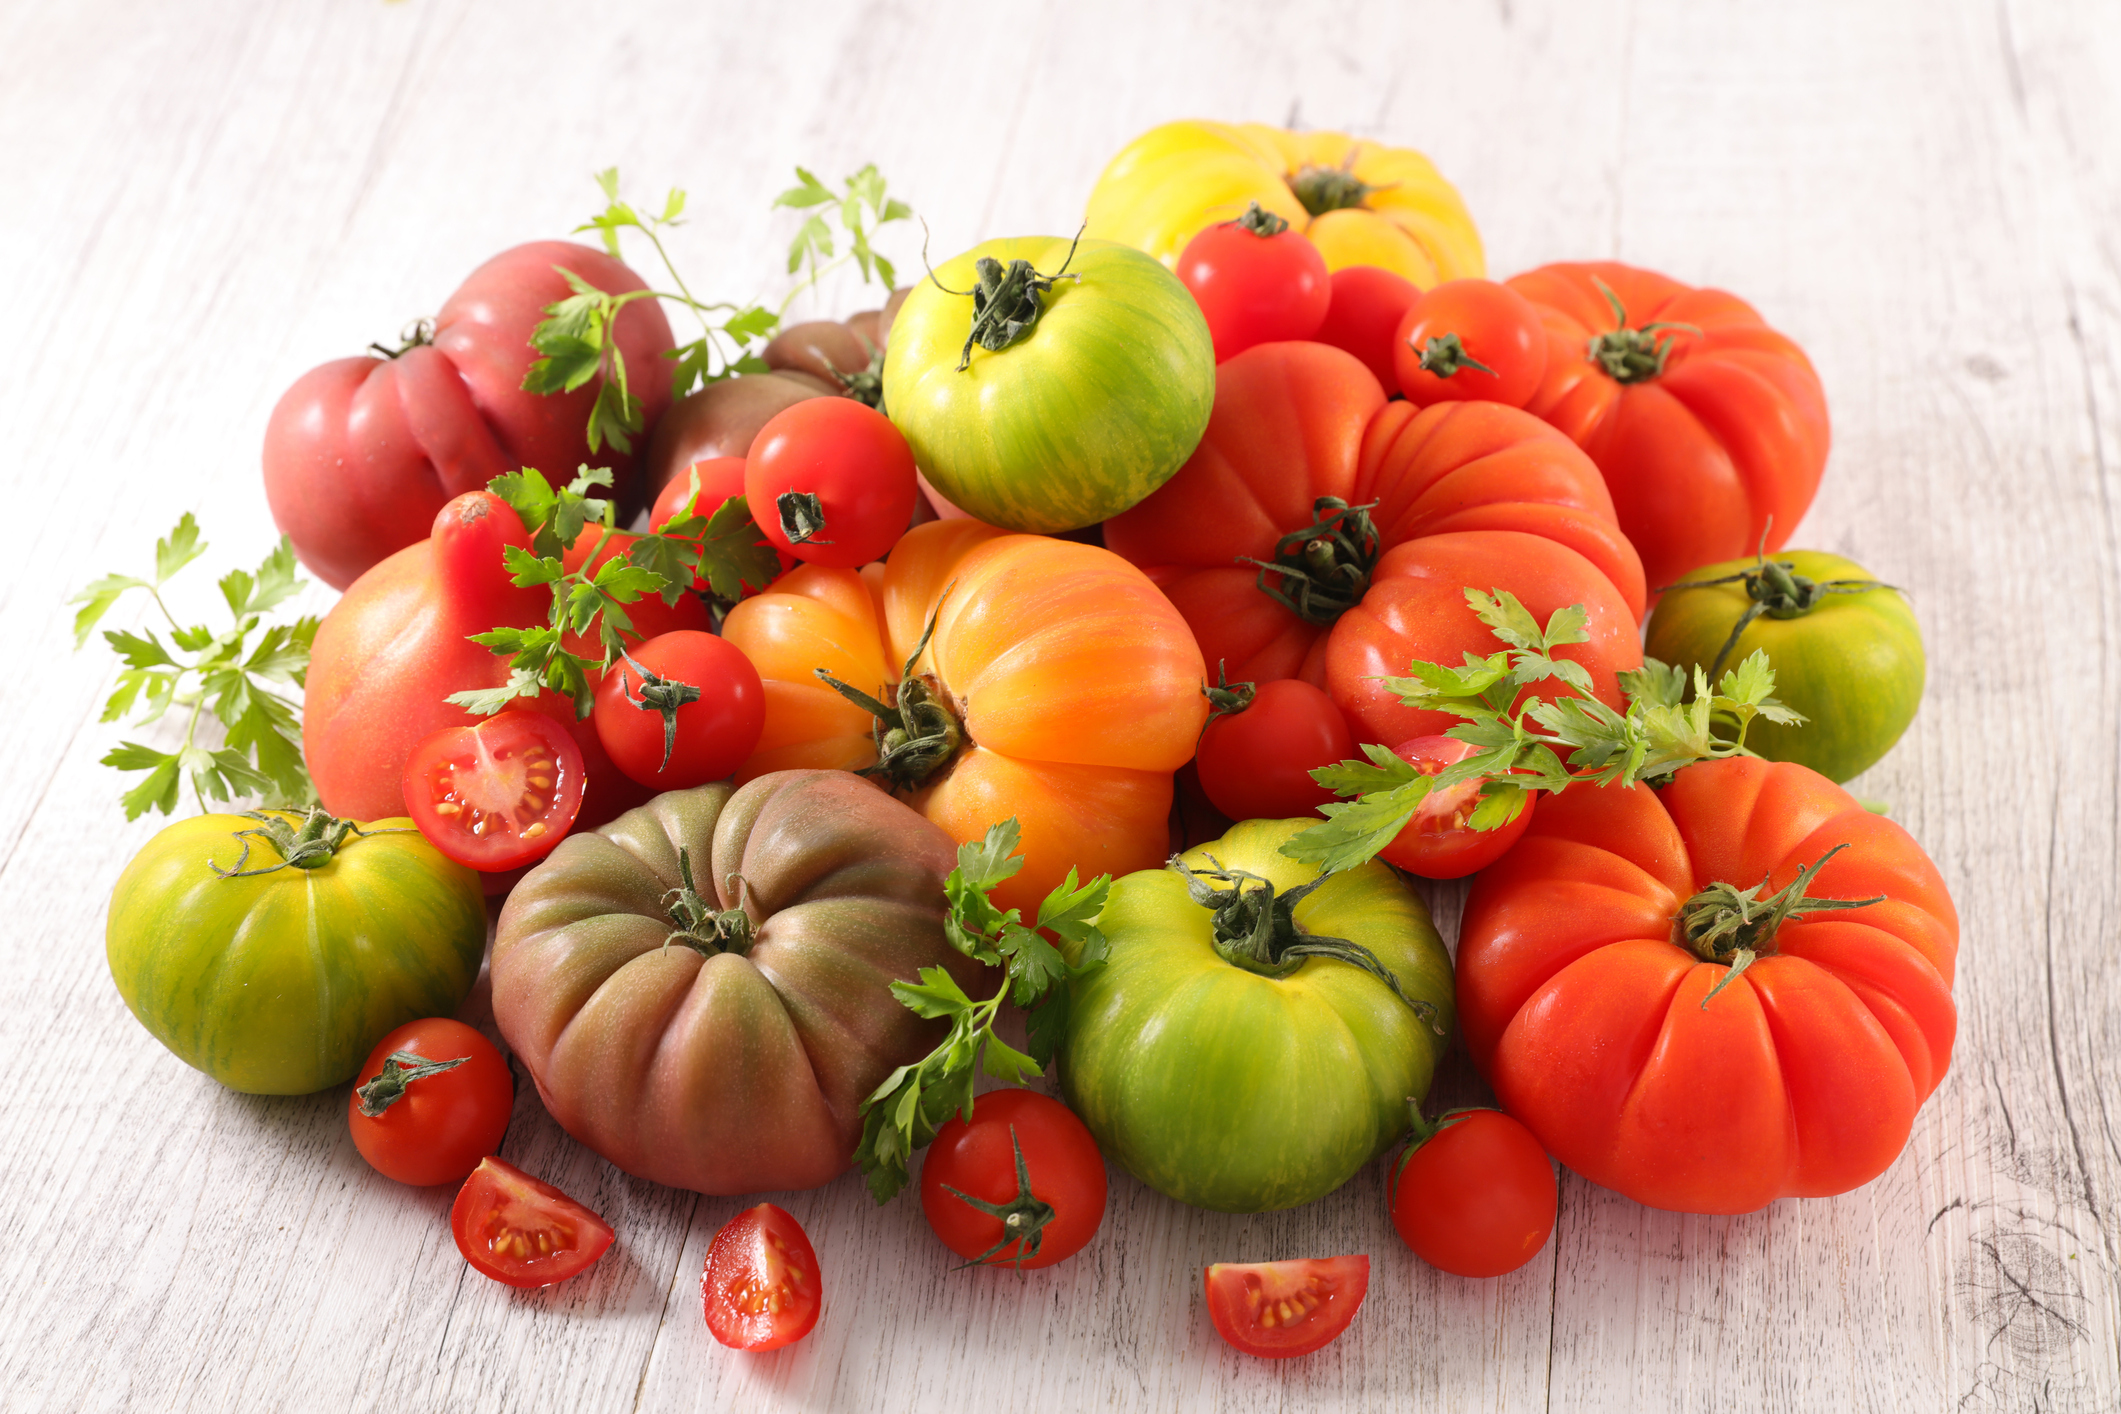 assorted various tomatoes